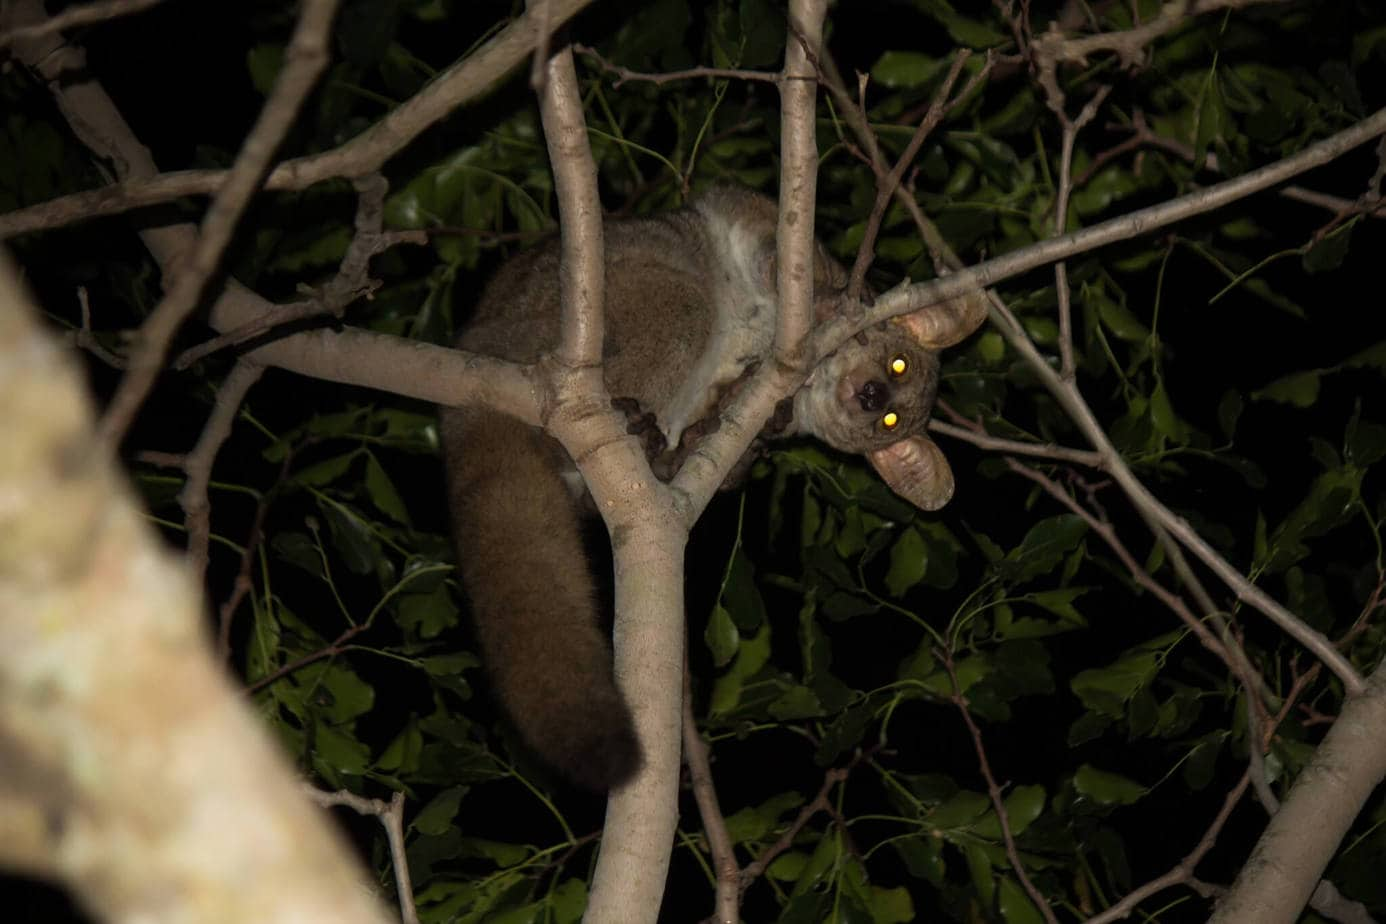 Thick-Tailed Greater Galago @ Tembe Elephant Park. Photo: Håvard Rosenlund